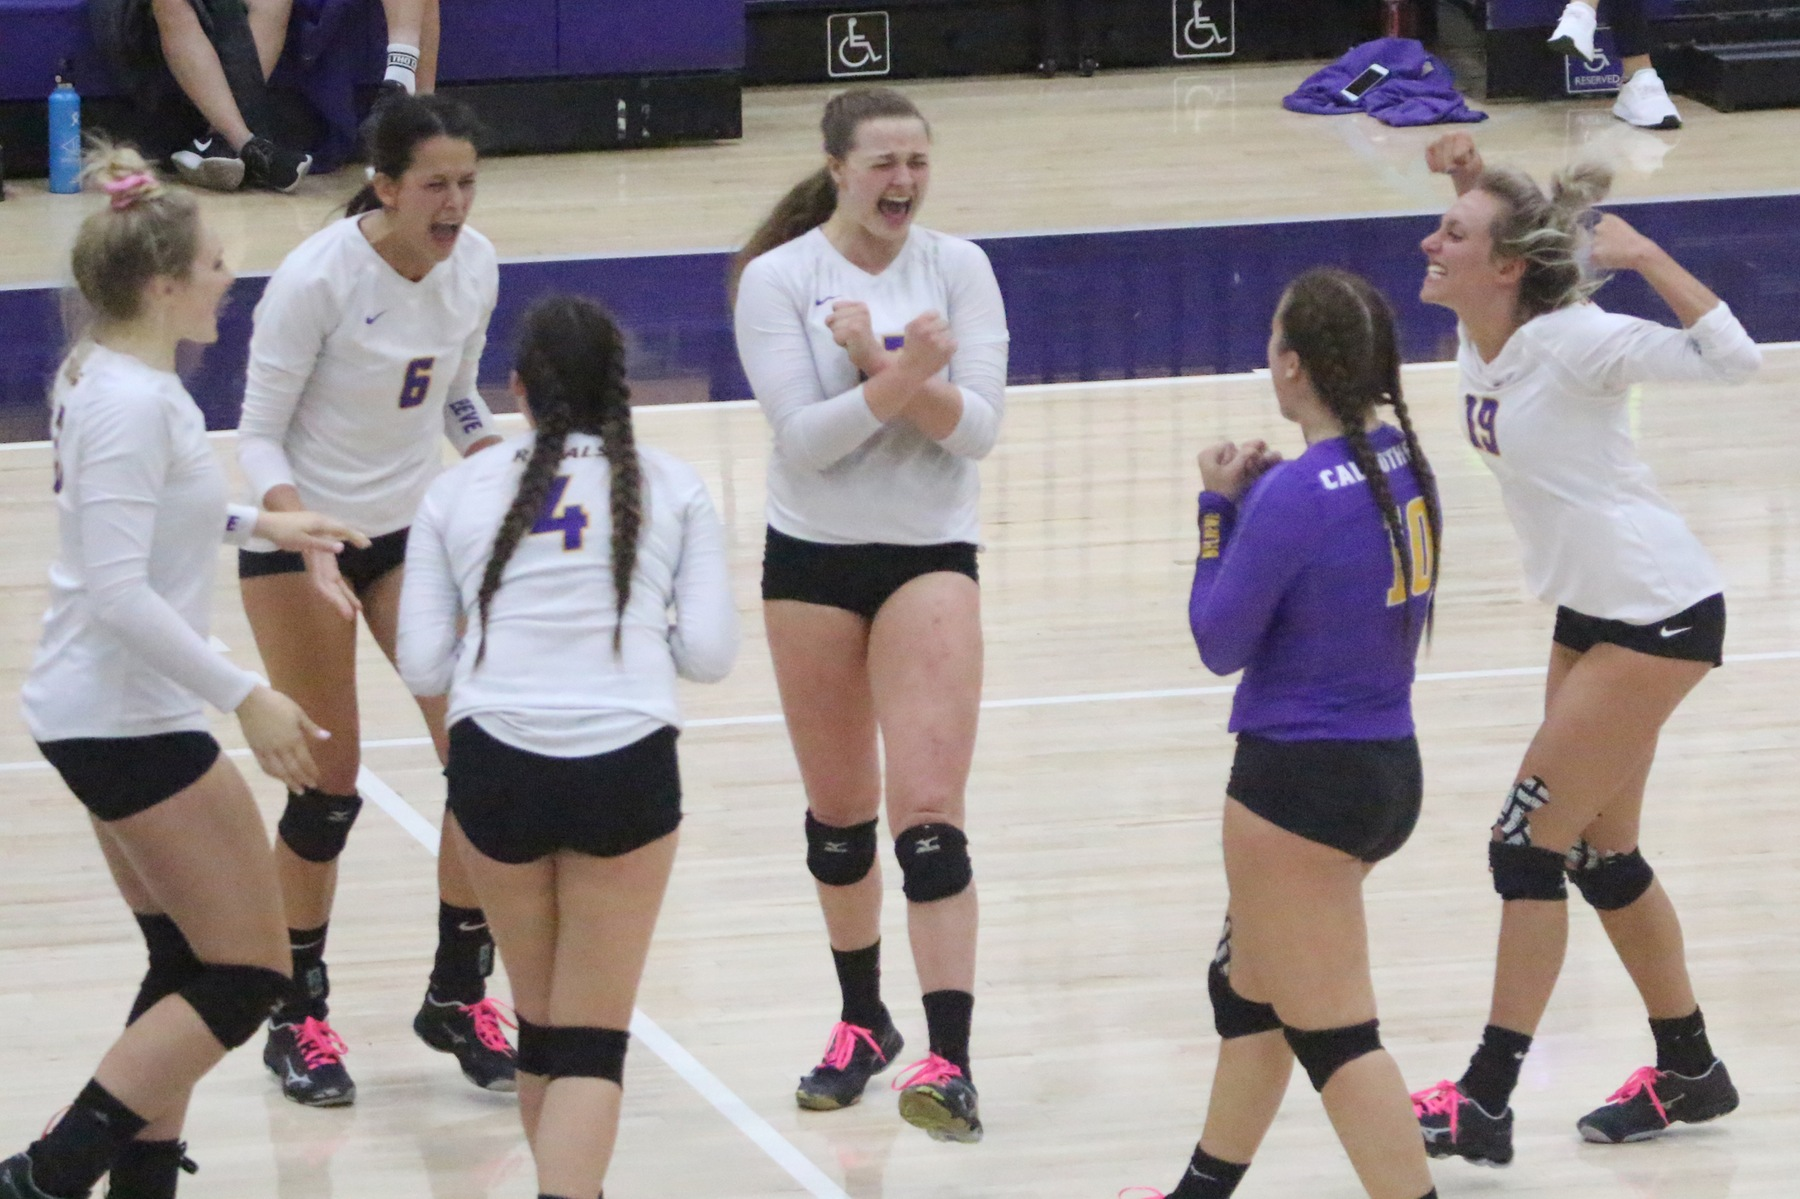 Regals defeat Panthers and advance to SCIAC Tournament Championship match.